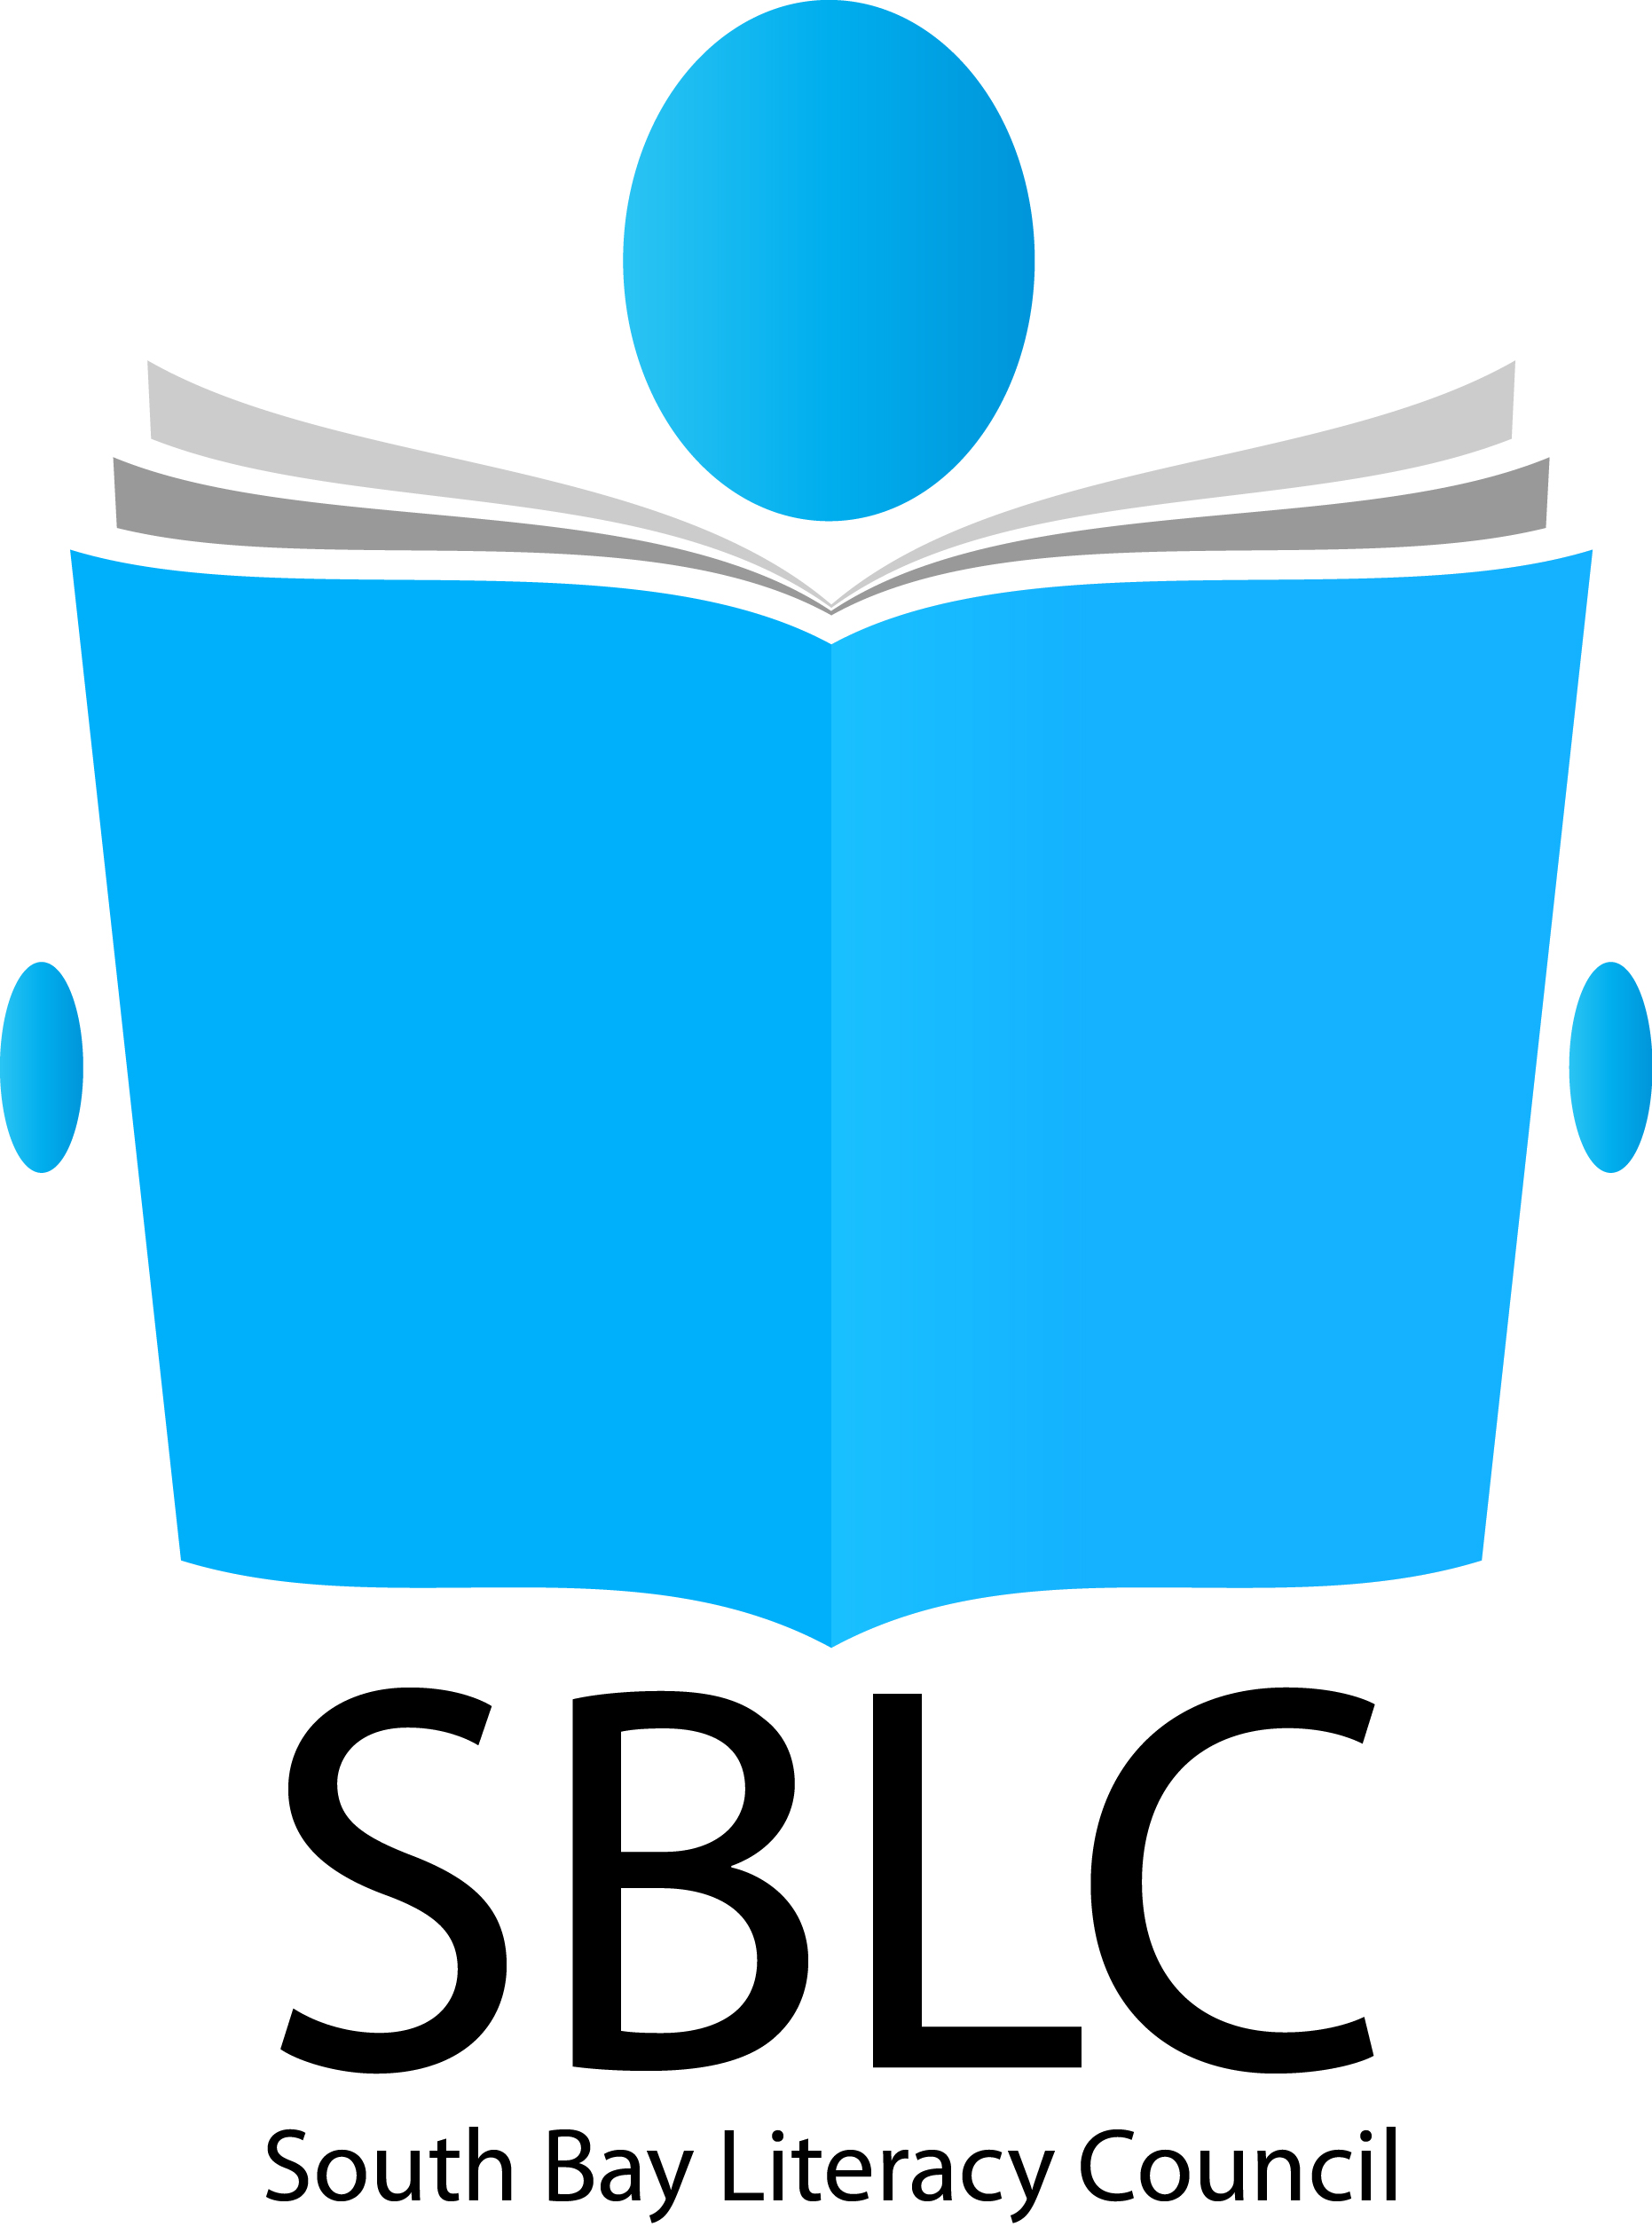 South Bay Literacy Council